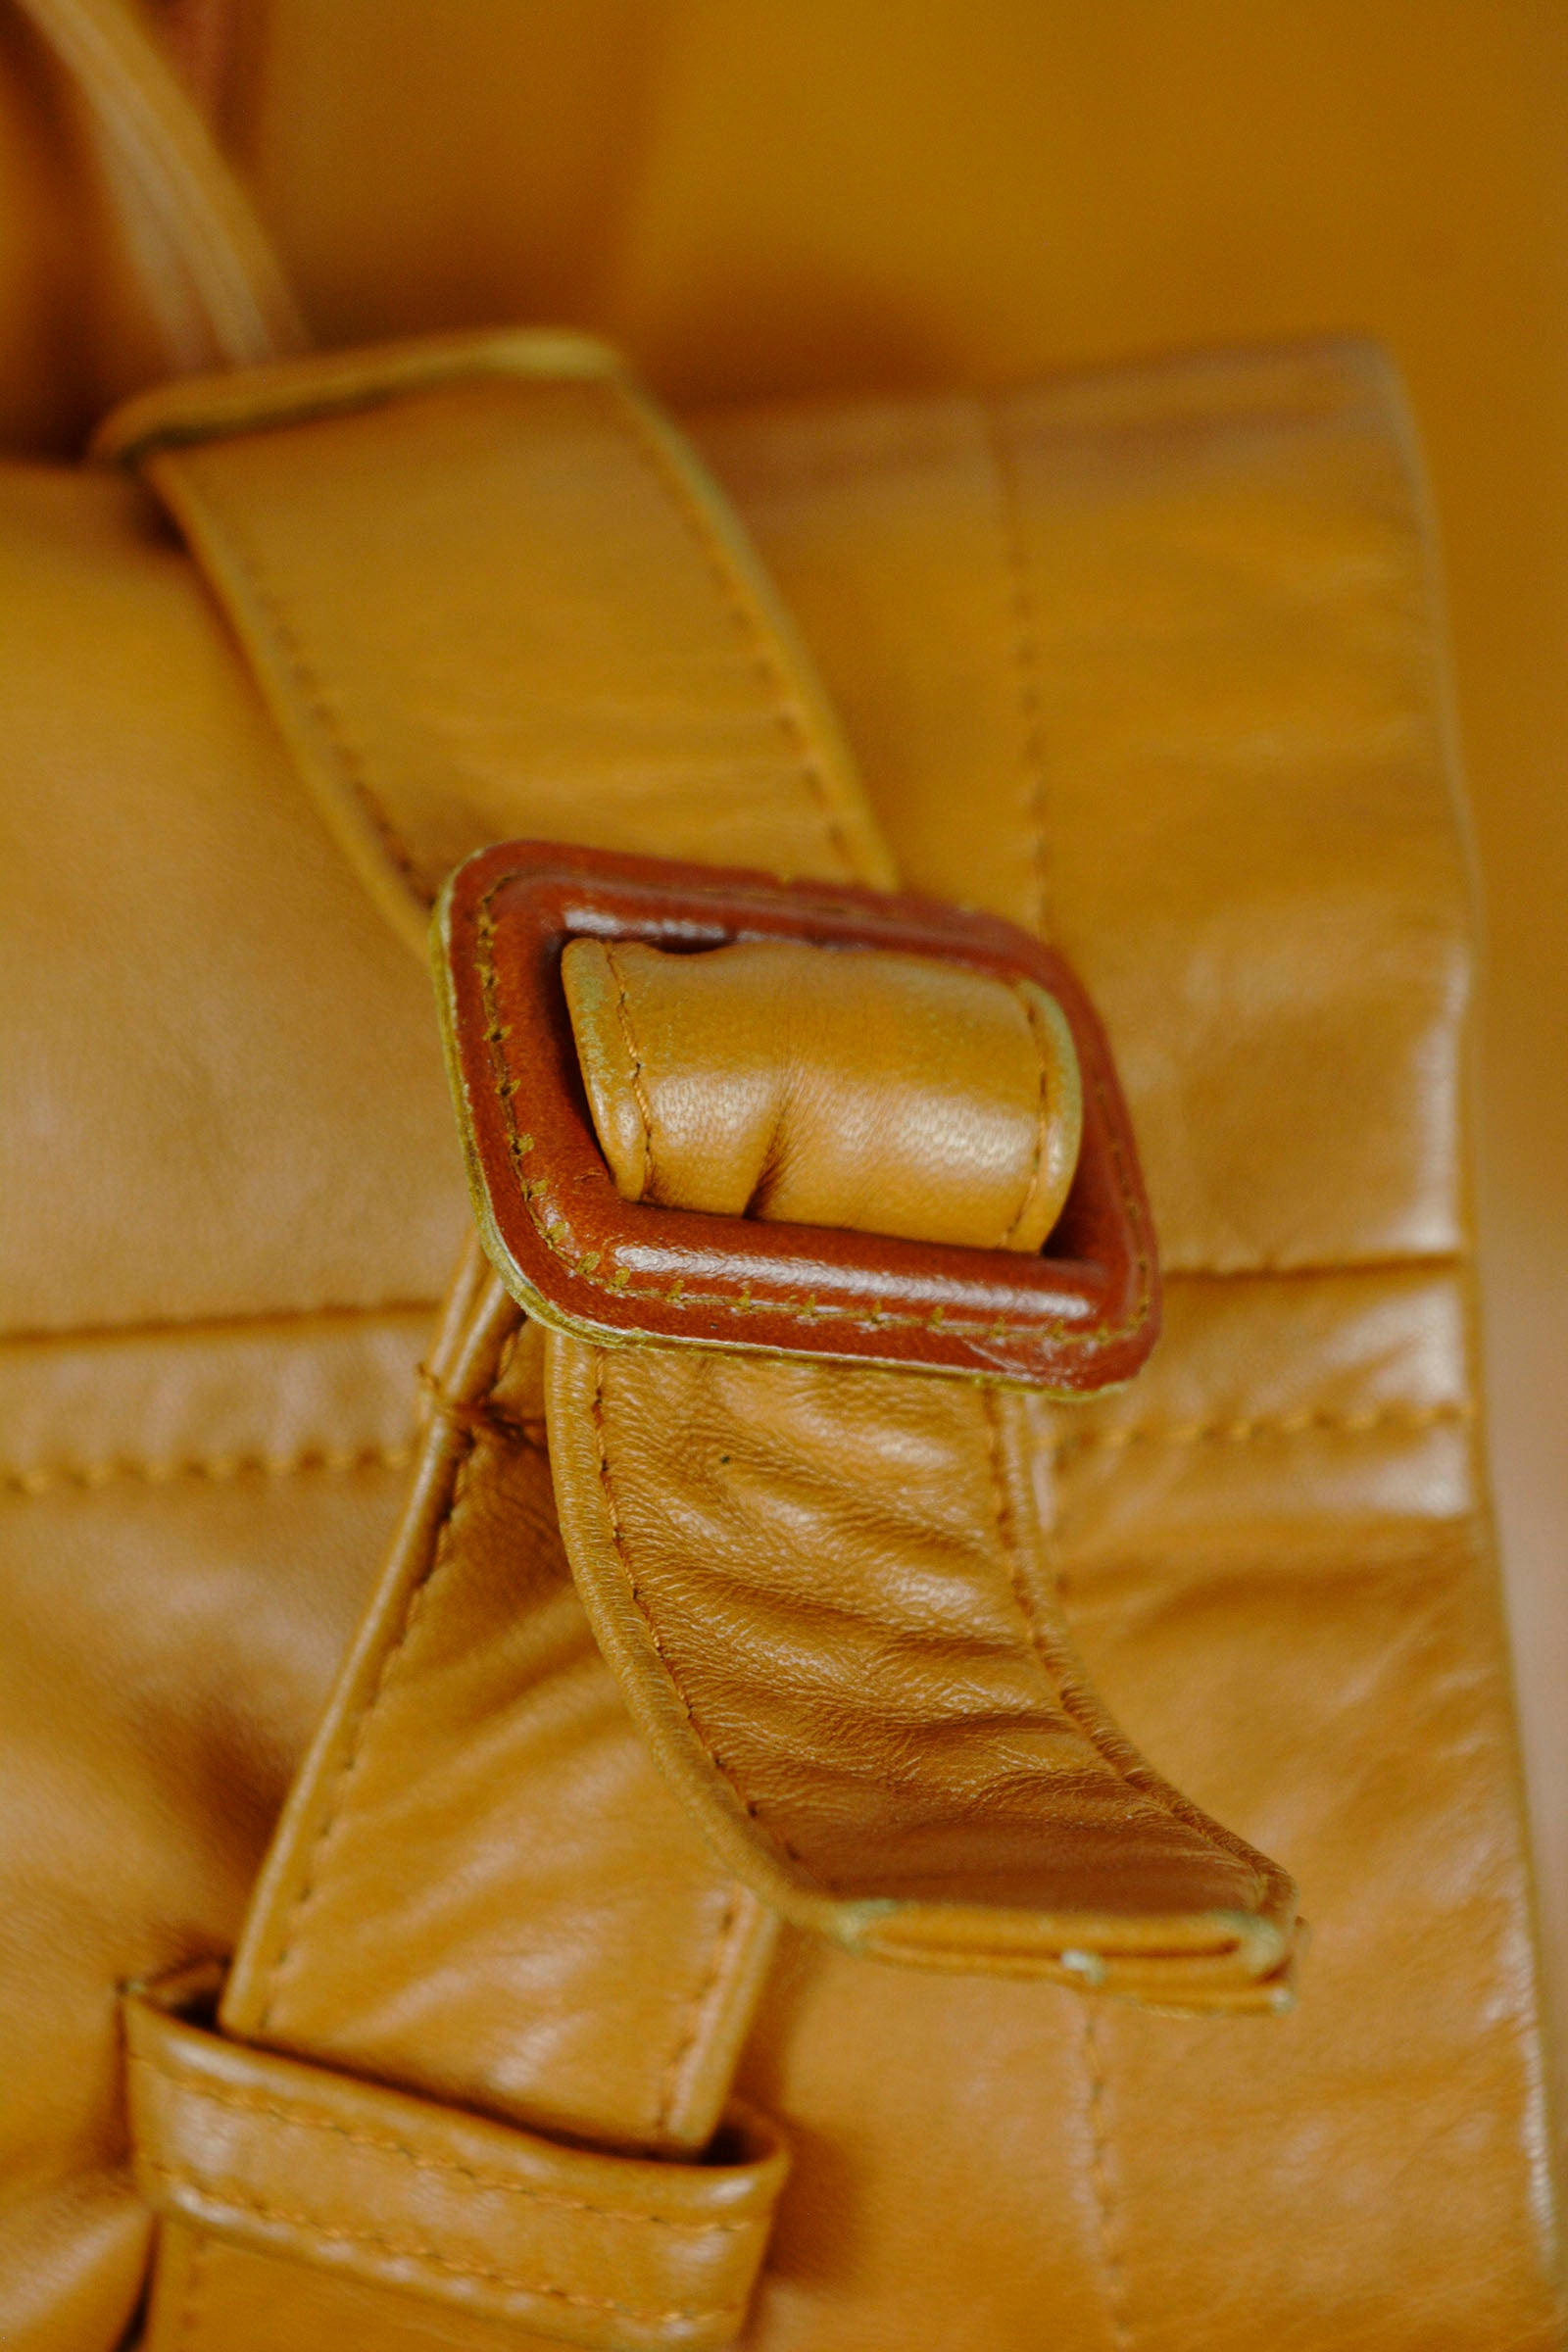 Burberry Camel Leather Belted Jacket Size 38 (EU)